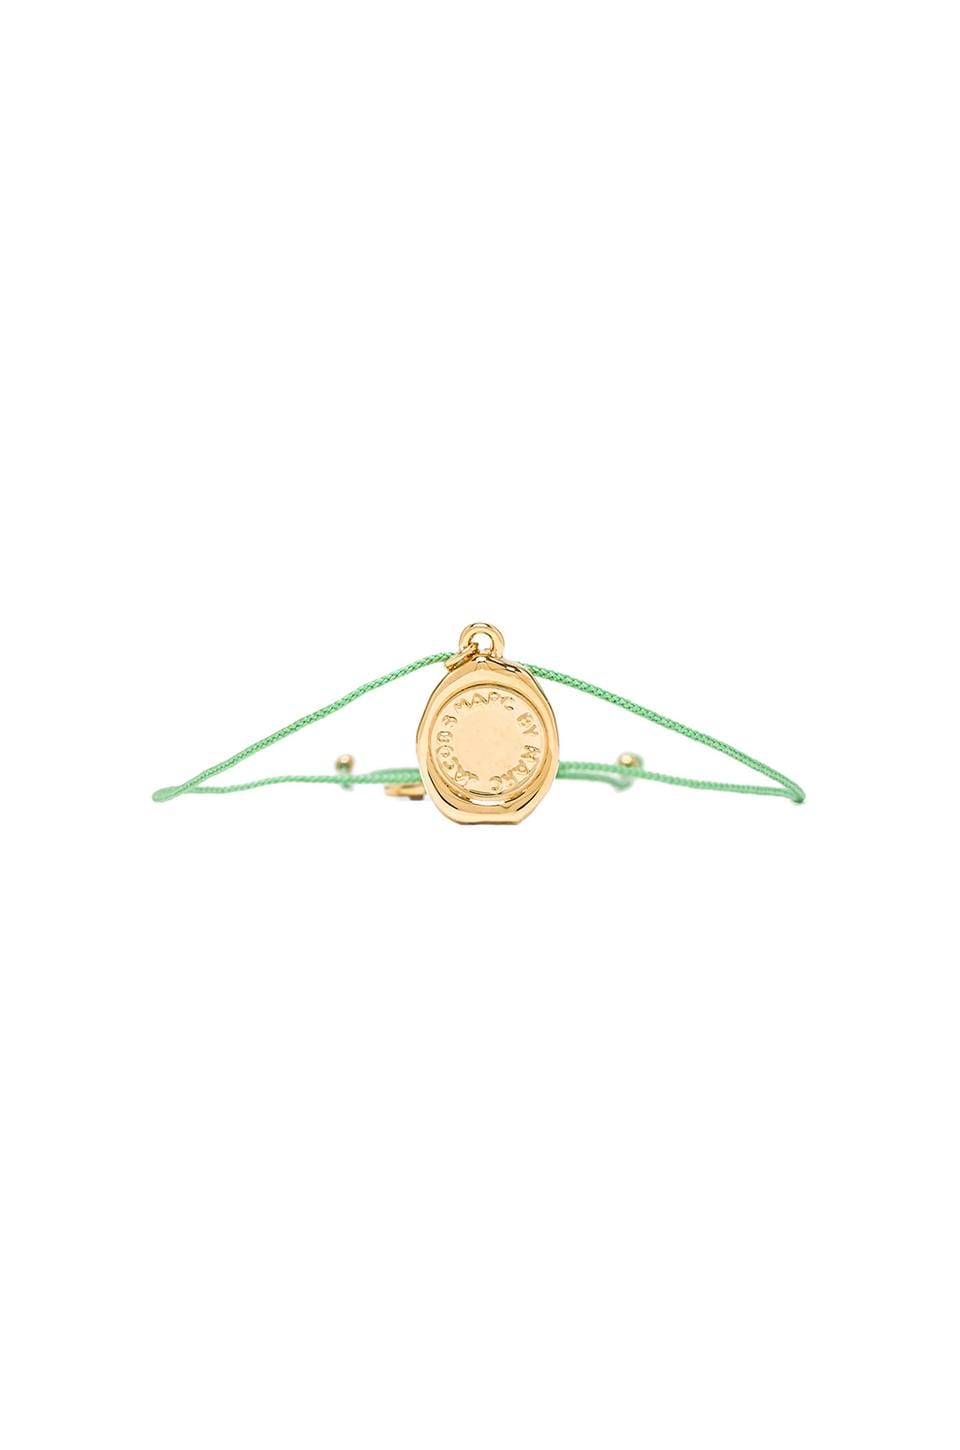 Marc by Marc Jacobs Grab & Go Stamped Friendship Bracelet in Fluoro Mint & Oro